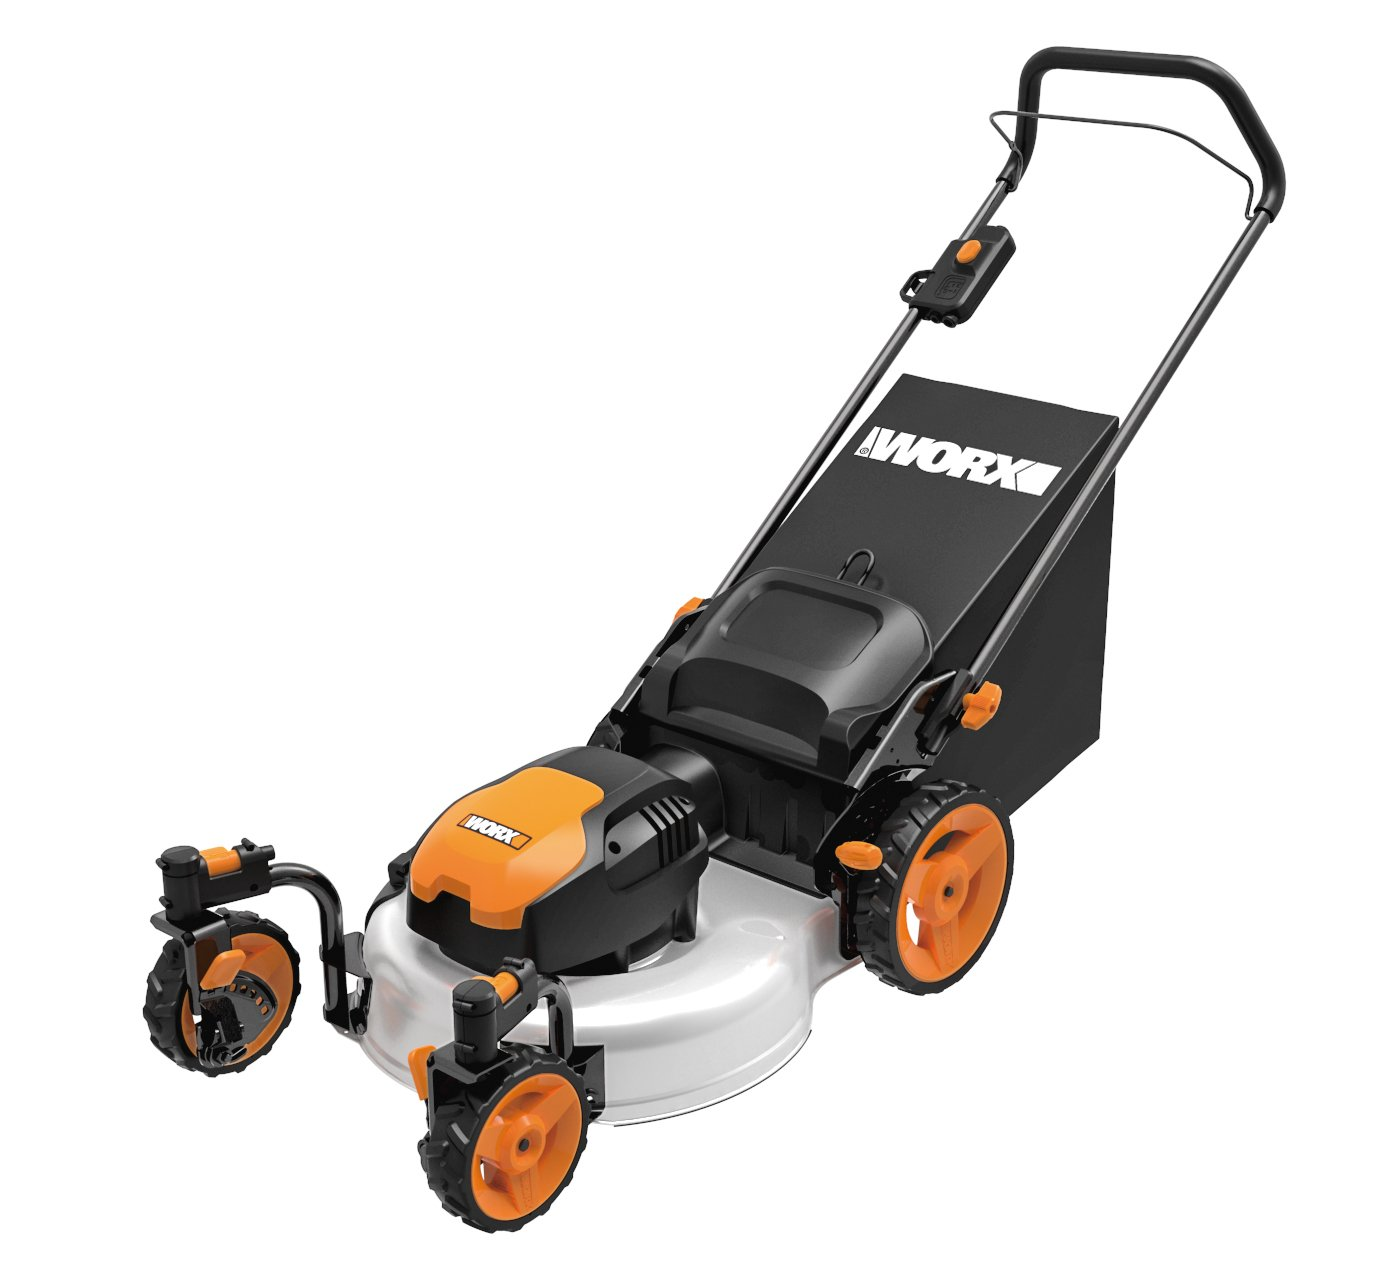 WORX WG719 13 Amp 20'' Electric Lawn Mower by WORX